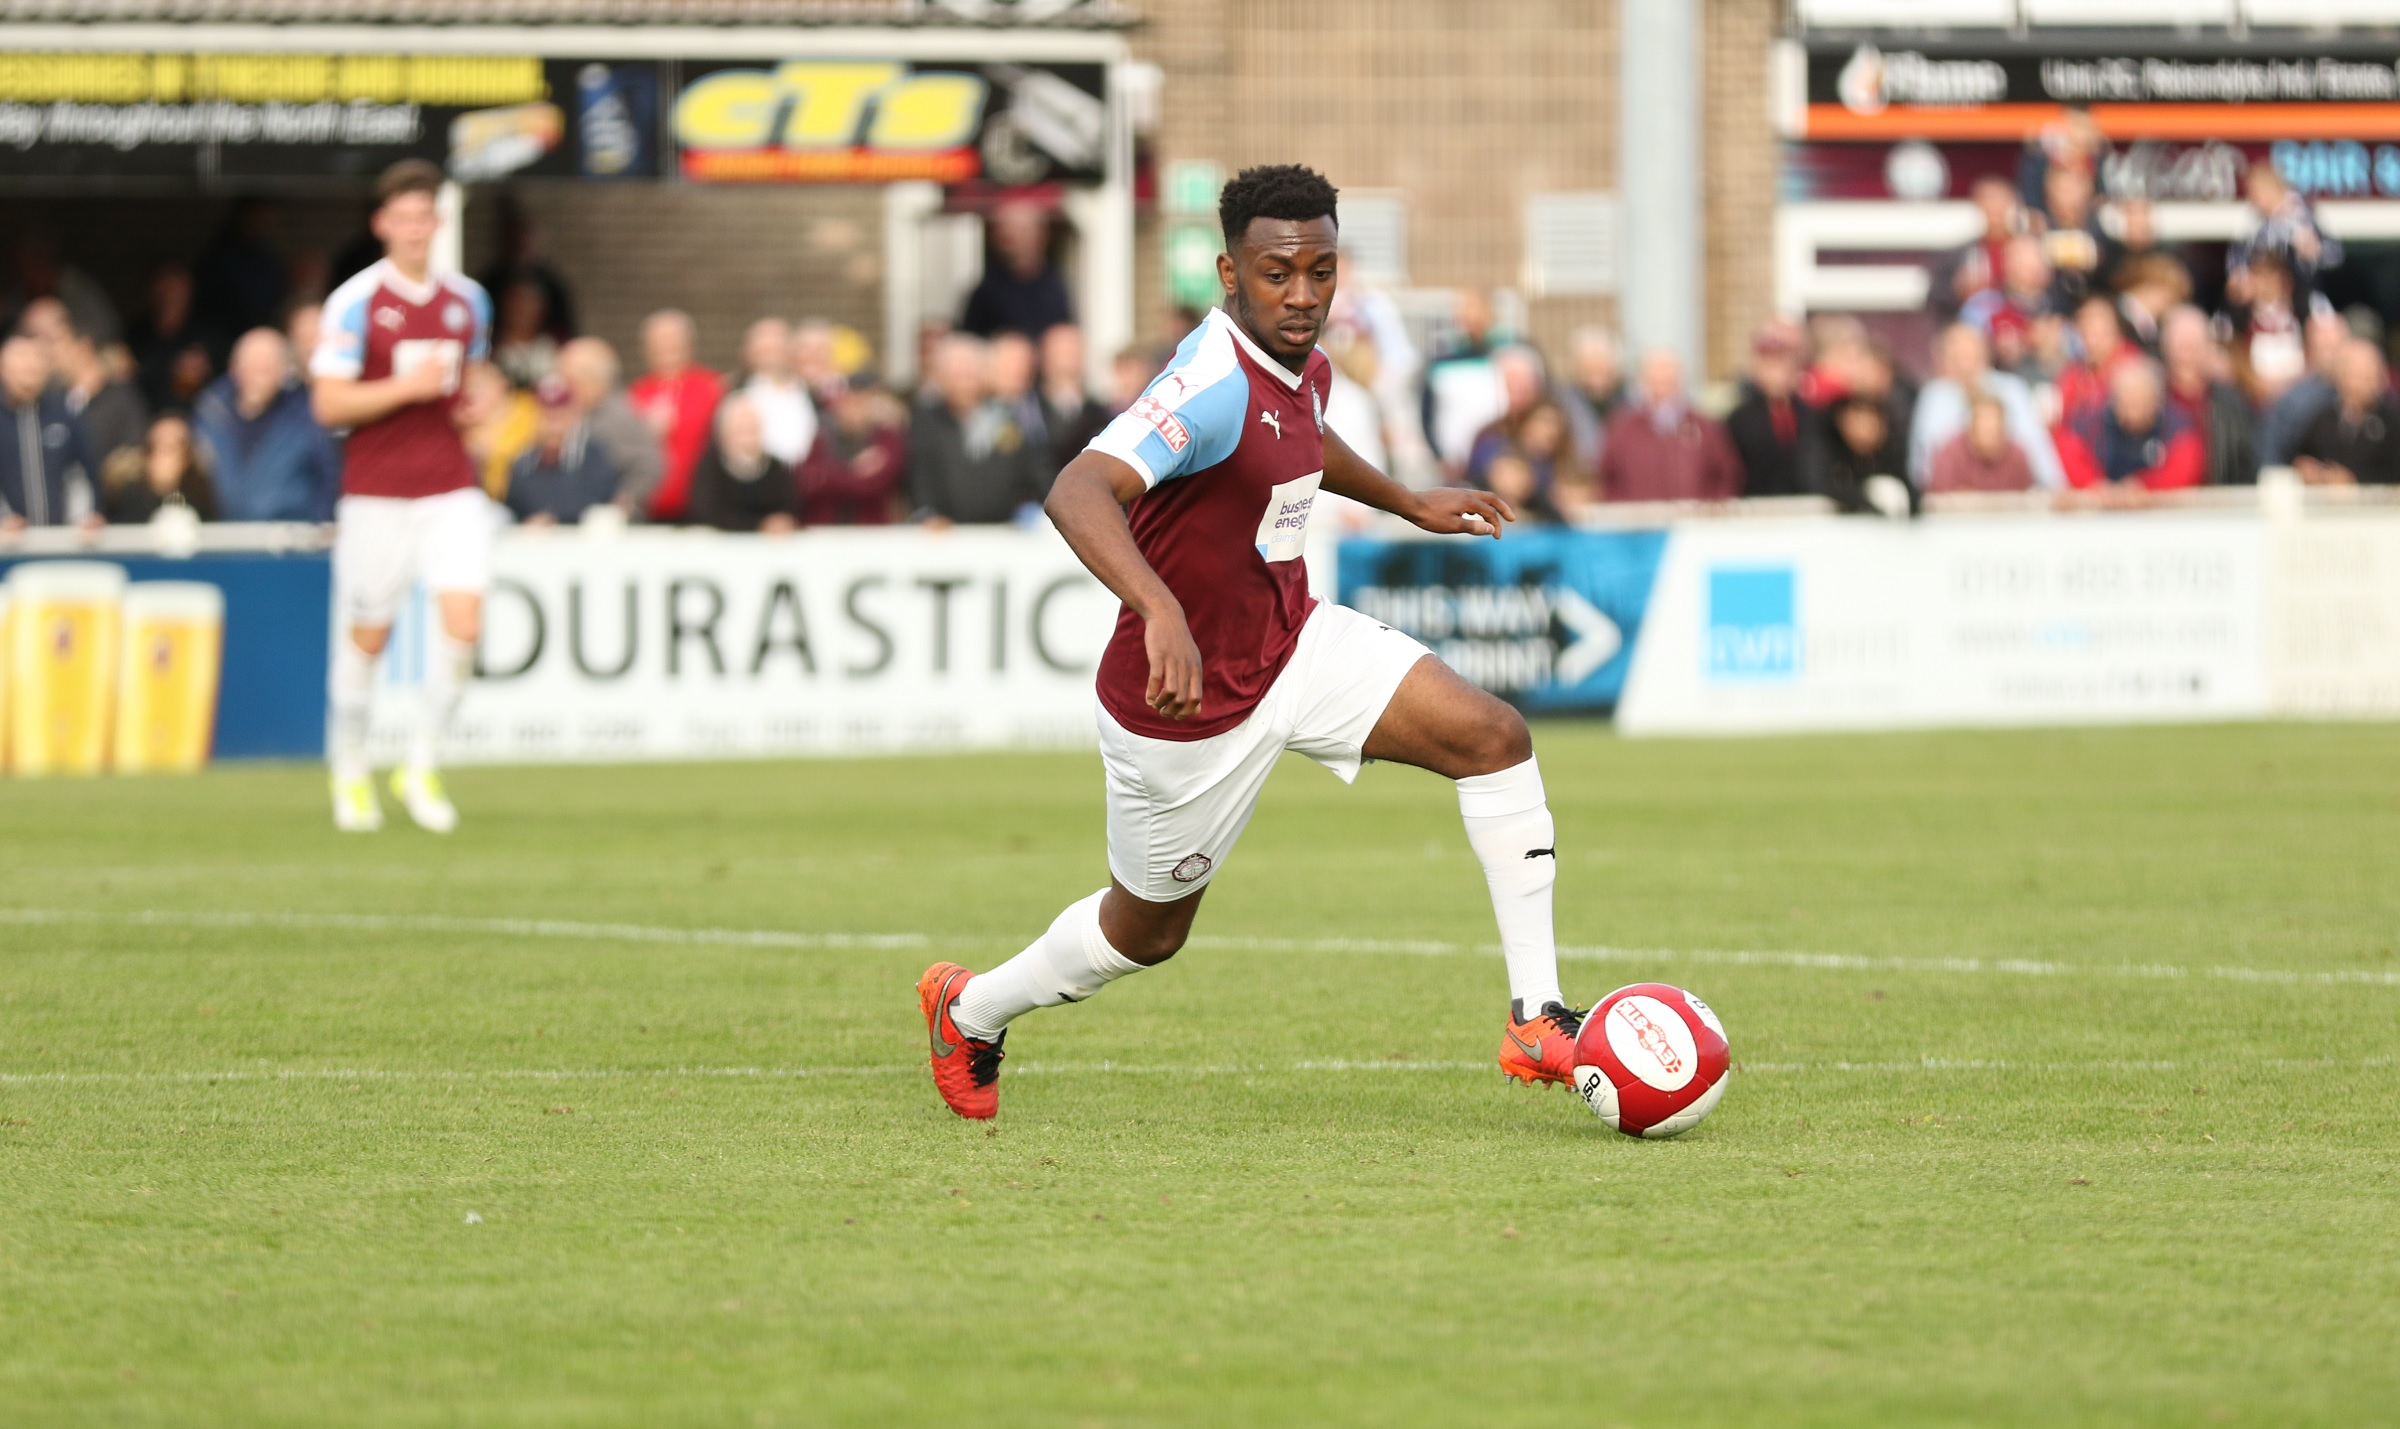 Ursene Mouanda joins Blyth Spartans on season-long loan